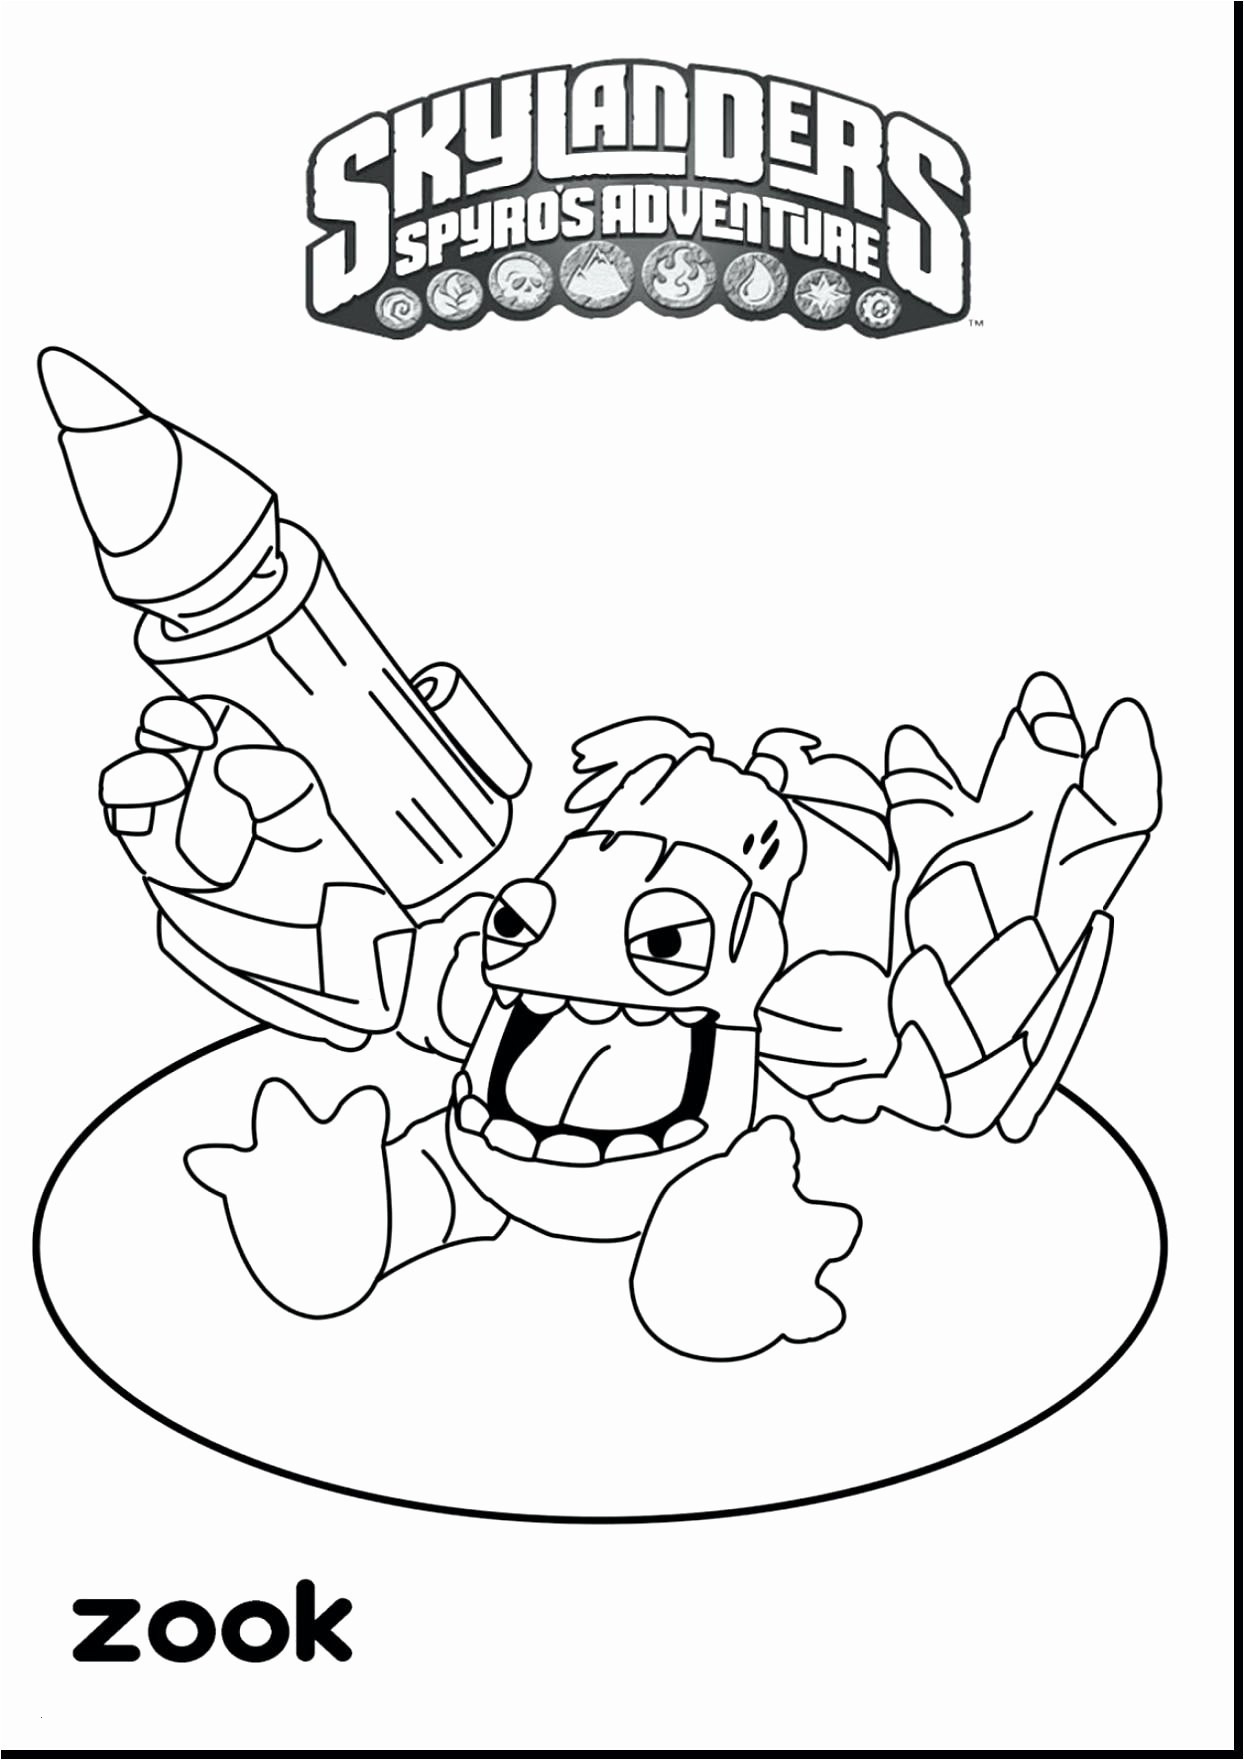 mothers day coloring pages for toddlers Collection-Mothers Day Coloring Pages Free 11-h